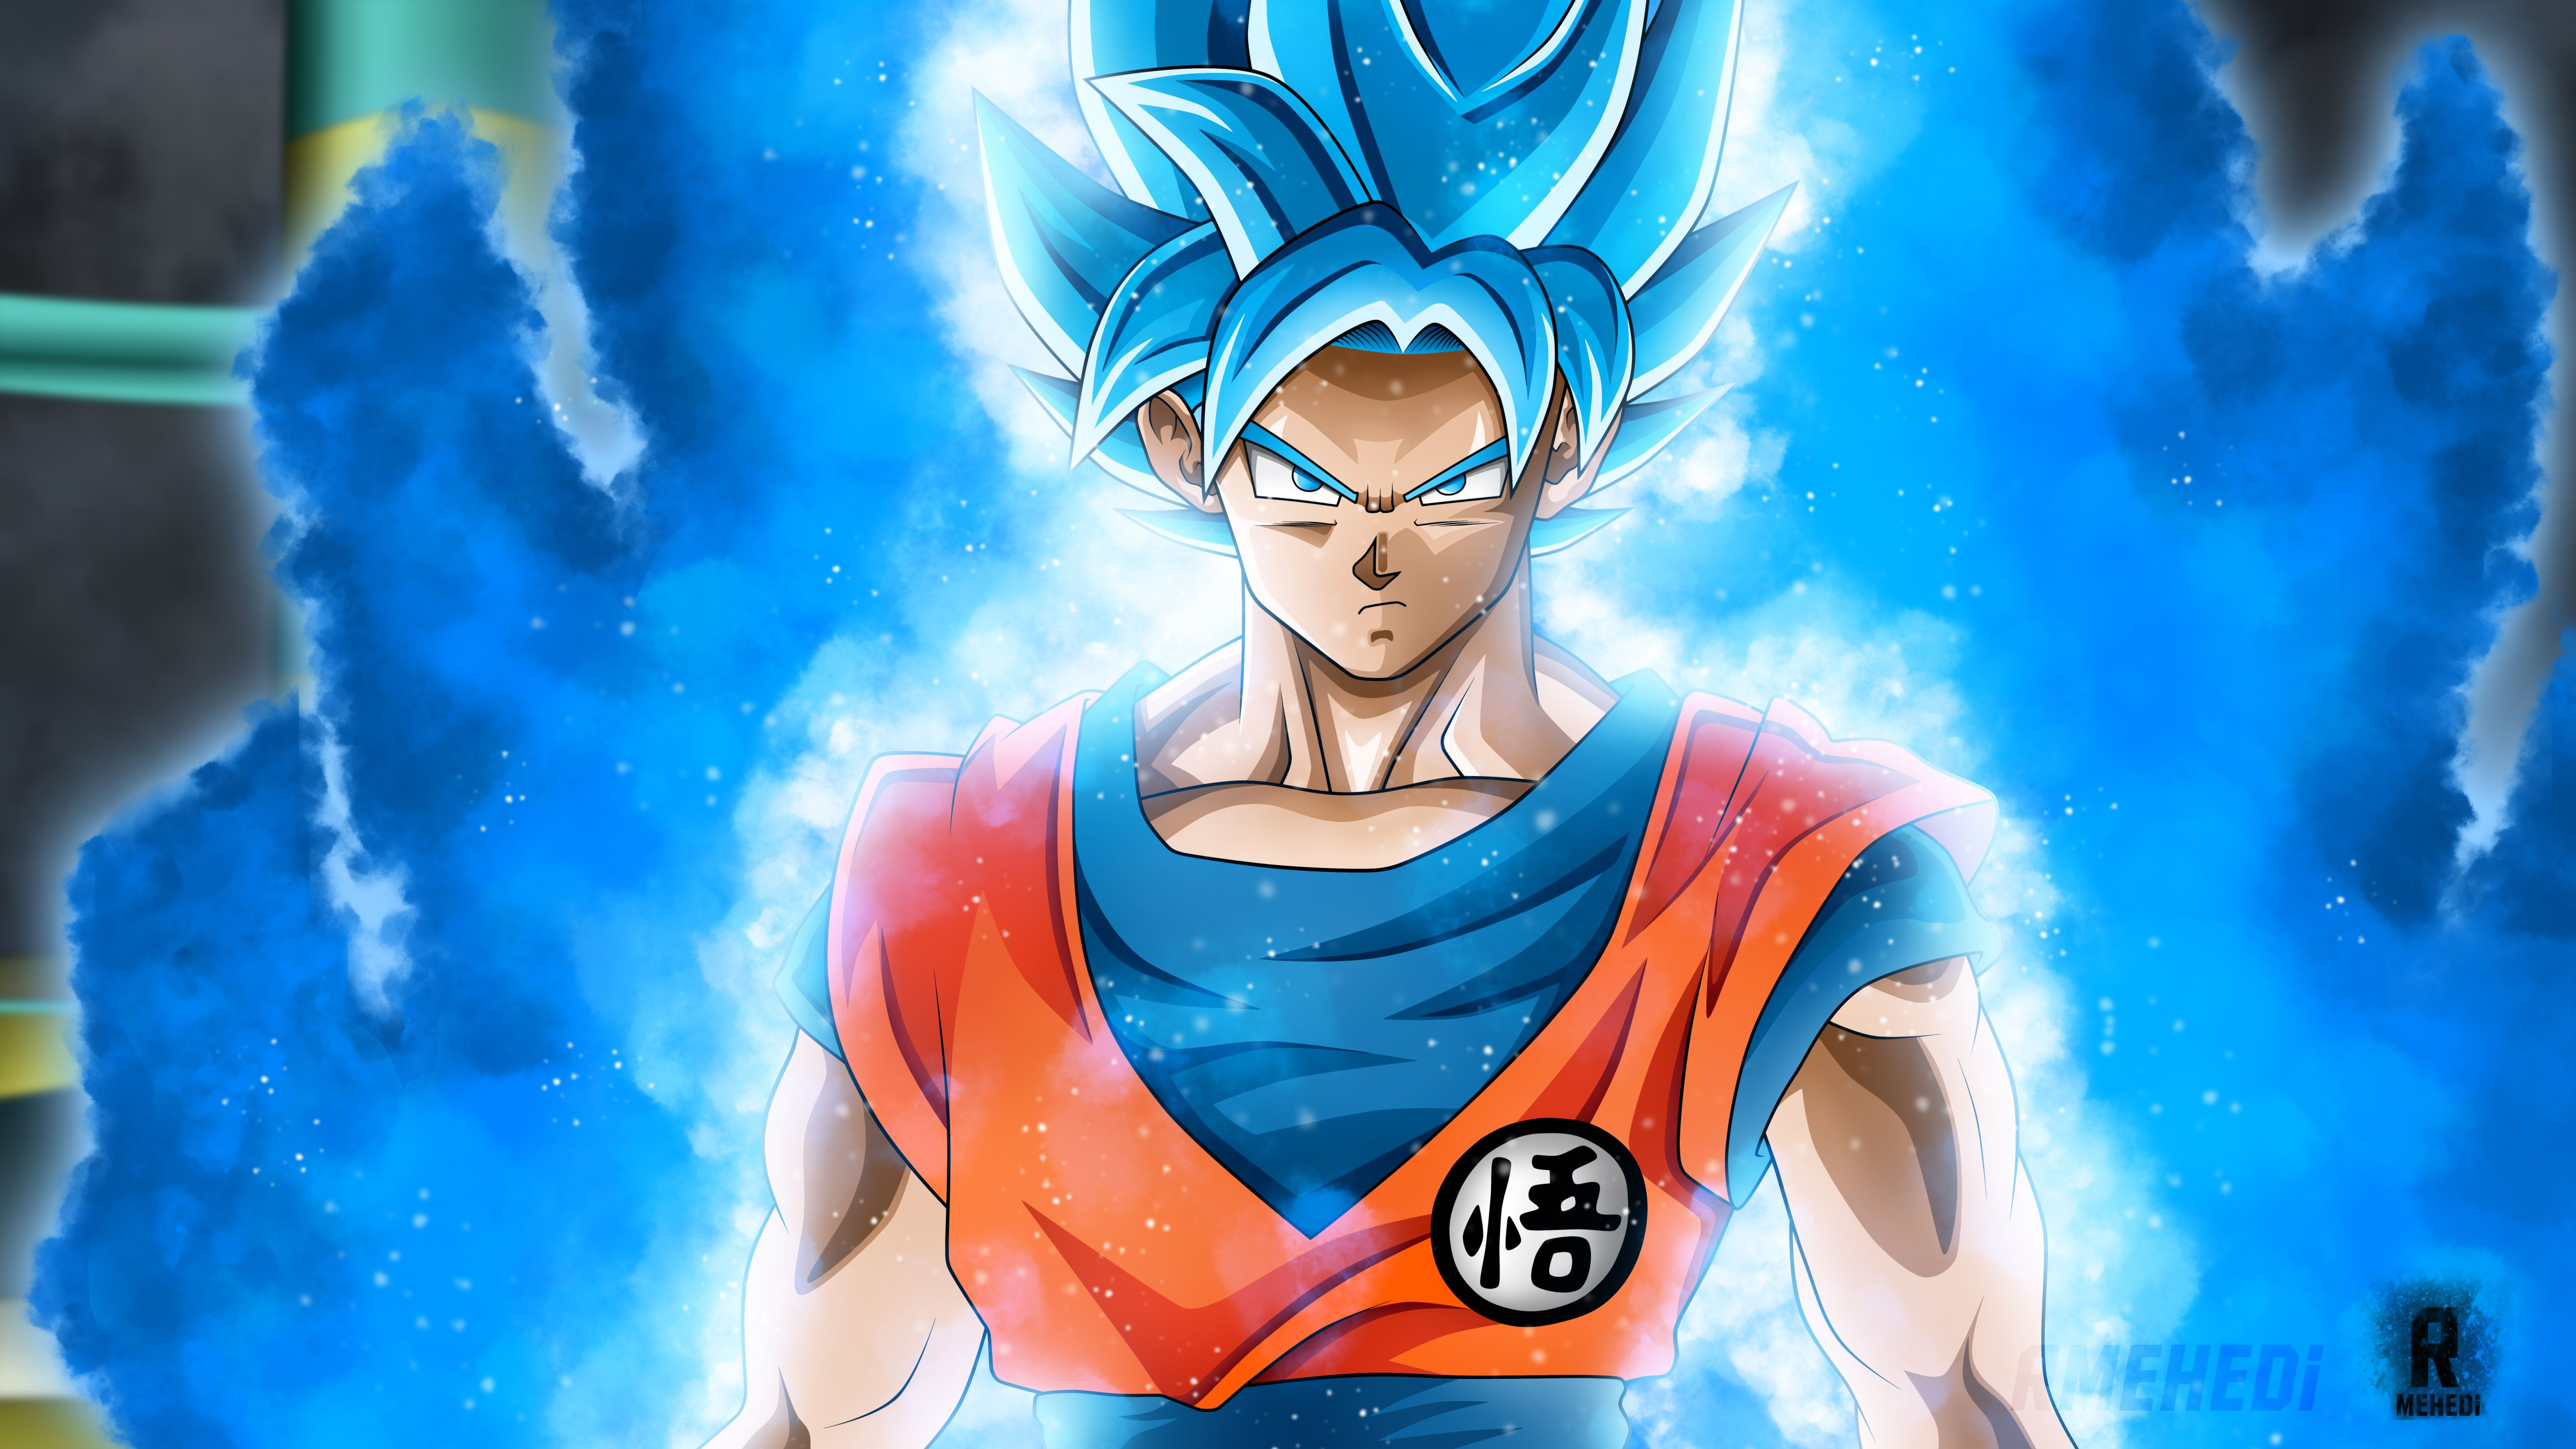 Dragon Ball Super Wallpaper Hd Click Wallpapers Cinema Interiors Inside Ideas Interiors design about Everything [magnanprojects.com]